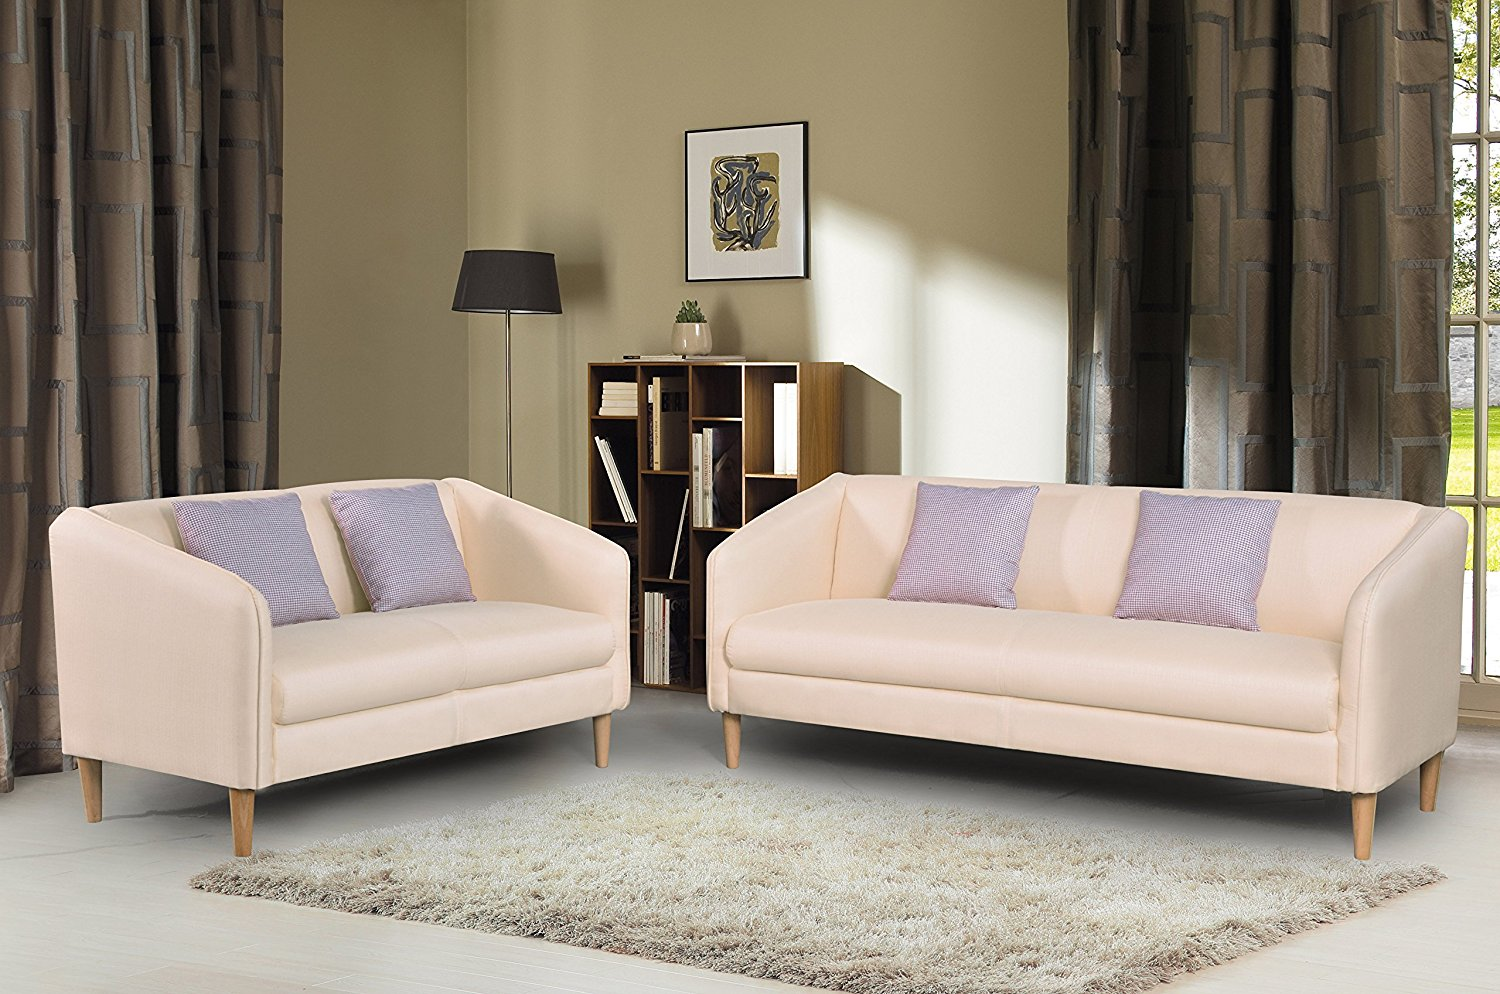 Container Furniture Direct Helton Collection 2 Piece Collection Modern Reversible Fabric Living Room Sofa Set, Cream